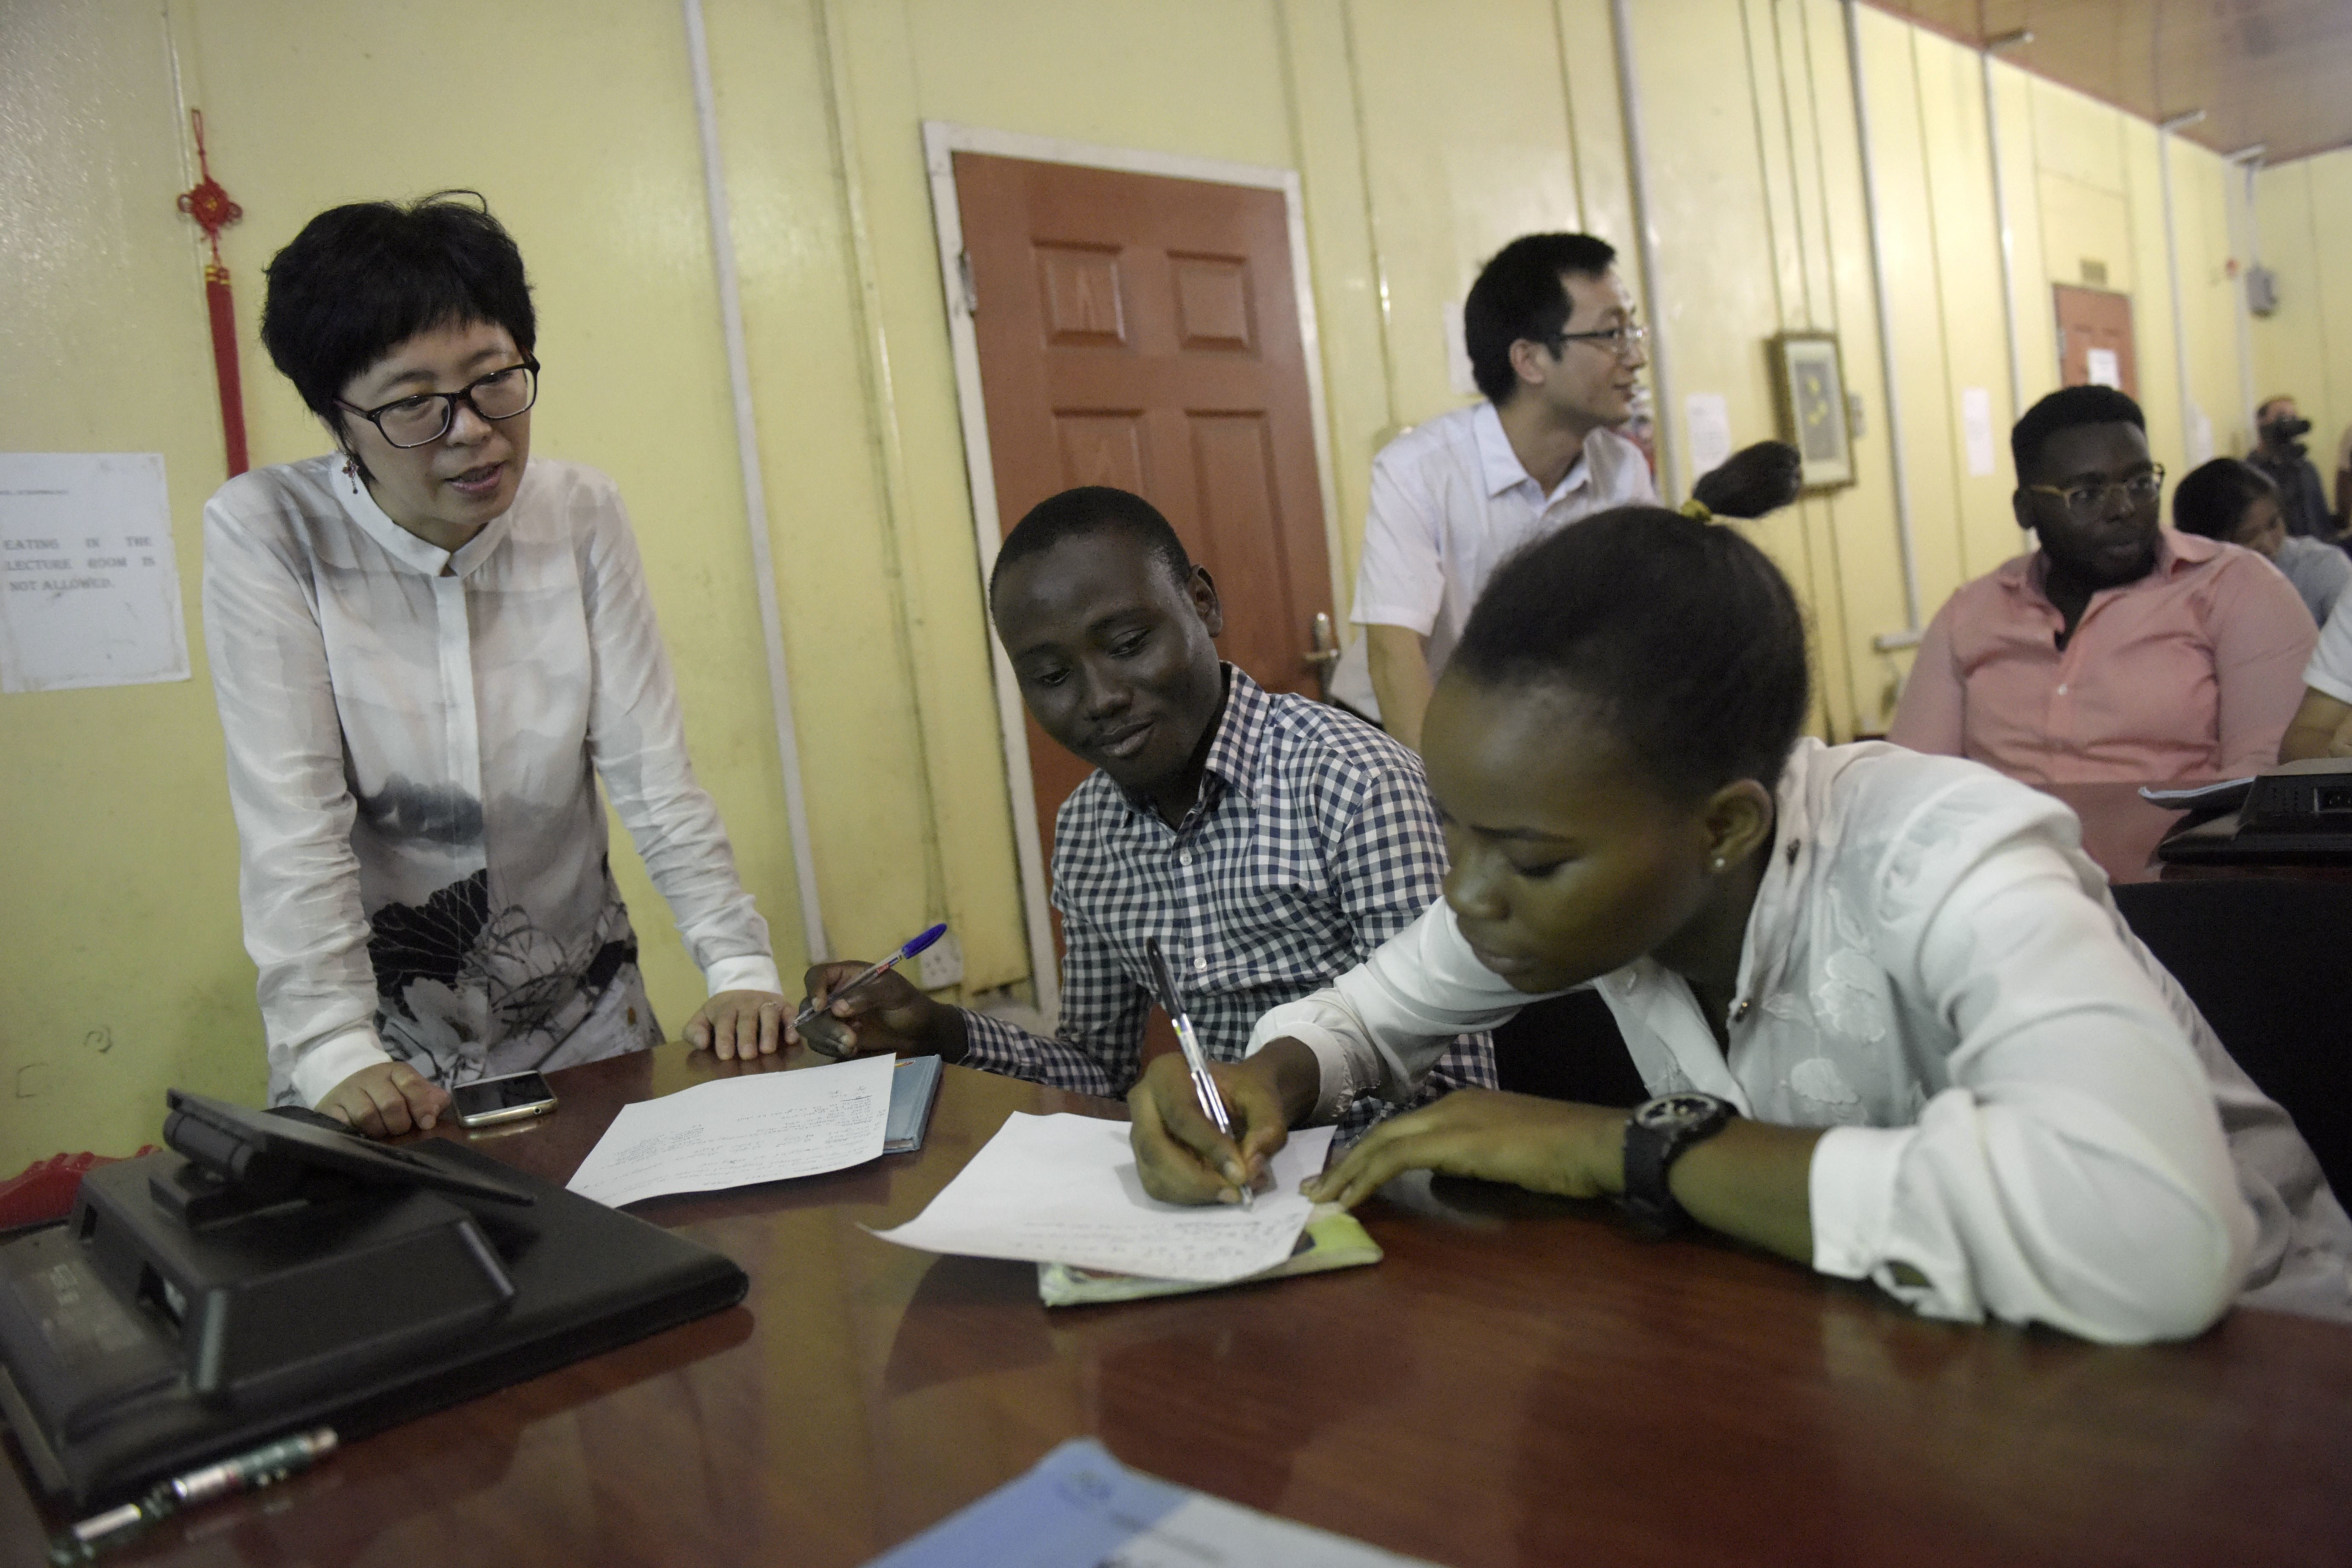 Yongjin Wang, director of the Confucius Institute, looks at students writing in Chinese at the Confucius Institute at the University of Lagos on April 6, 2016.   Some three dozen Nigerians are currently studying for language and culture degrees at Chinese universities while a second Confucius Institute has been opened in southeast Nigeria. Lagos has five pilot project schools where Mandarin is taught.  / AFP / PIUS UTOMI EKPEI        (Photo credit should read PIUS UTOMI EKPEI/AFP/Getty Images)